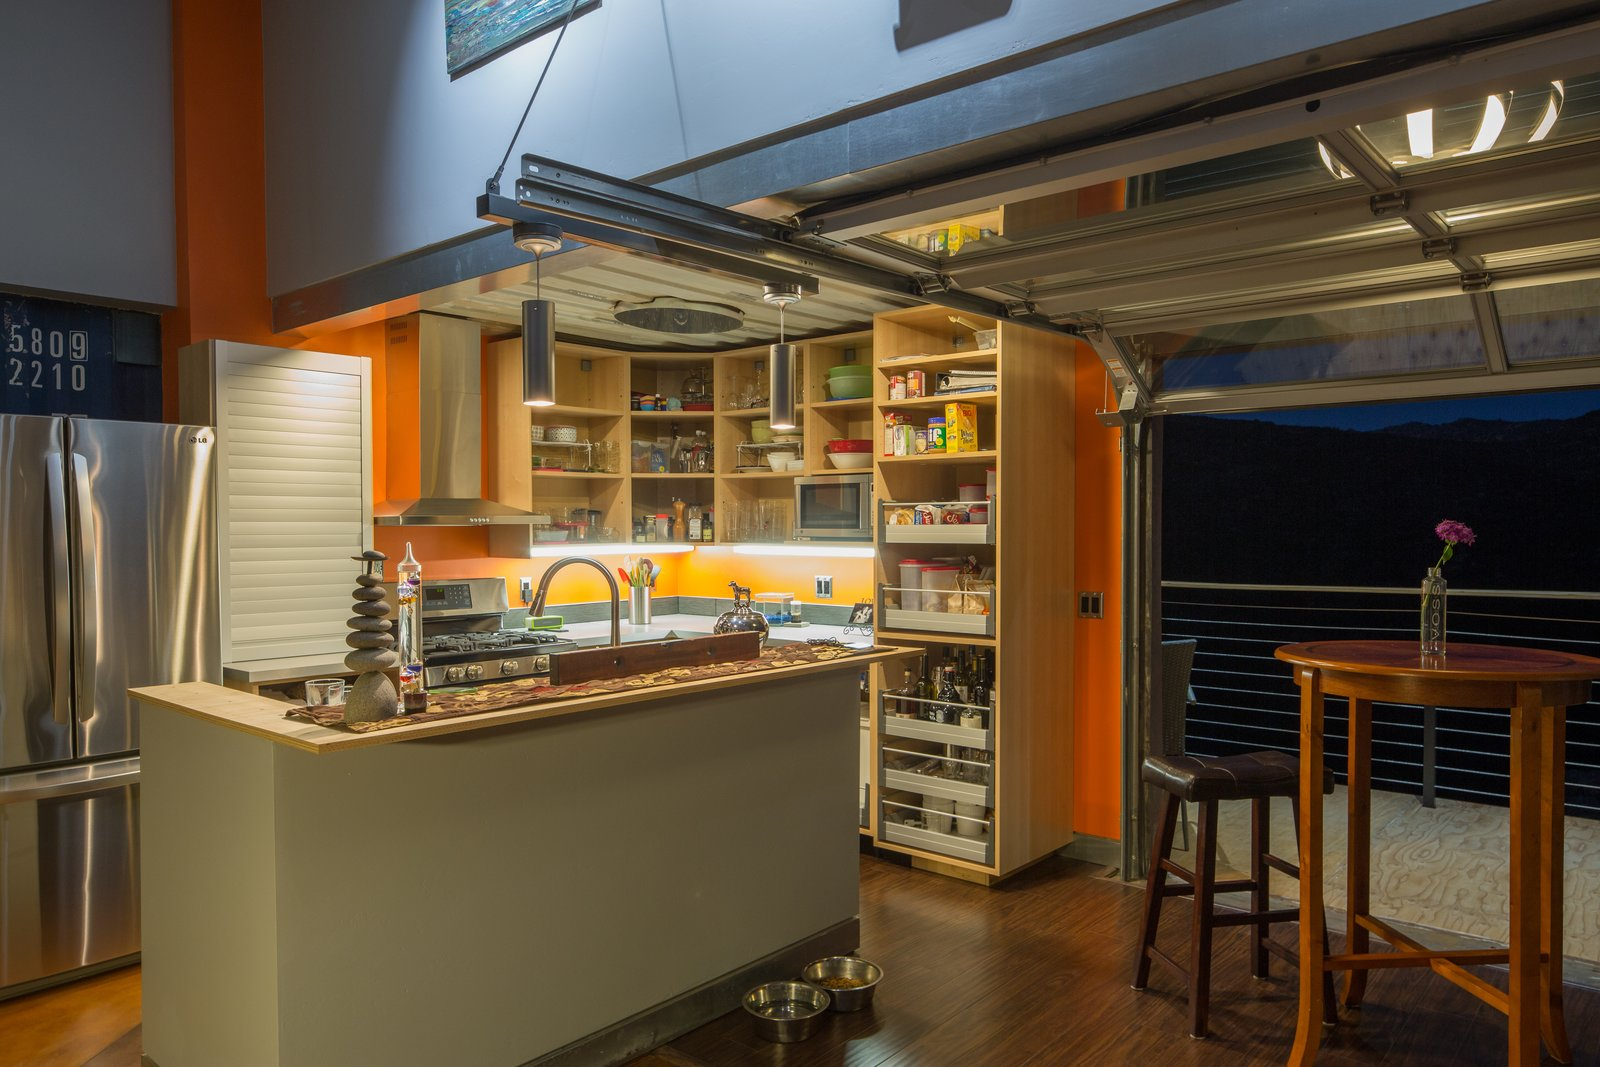 In the open-plan kitchen, a garage door can be retracted to take advantage of the balmy California climate and bring the outdoors in. Mike's wife, Shawn, appreciates the home's proximity to hiking trails.  Shipping Containers by Dwell from A Rustic Shipping Container Home Built on a Budget